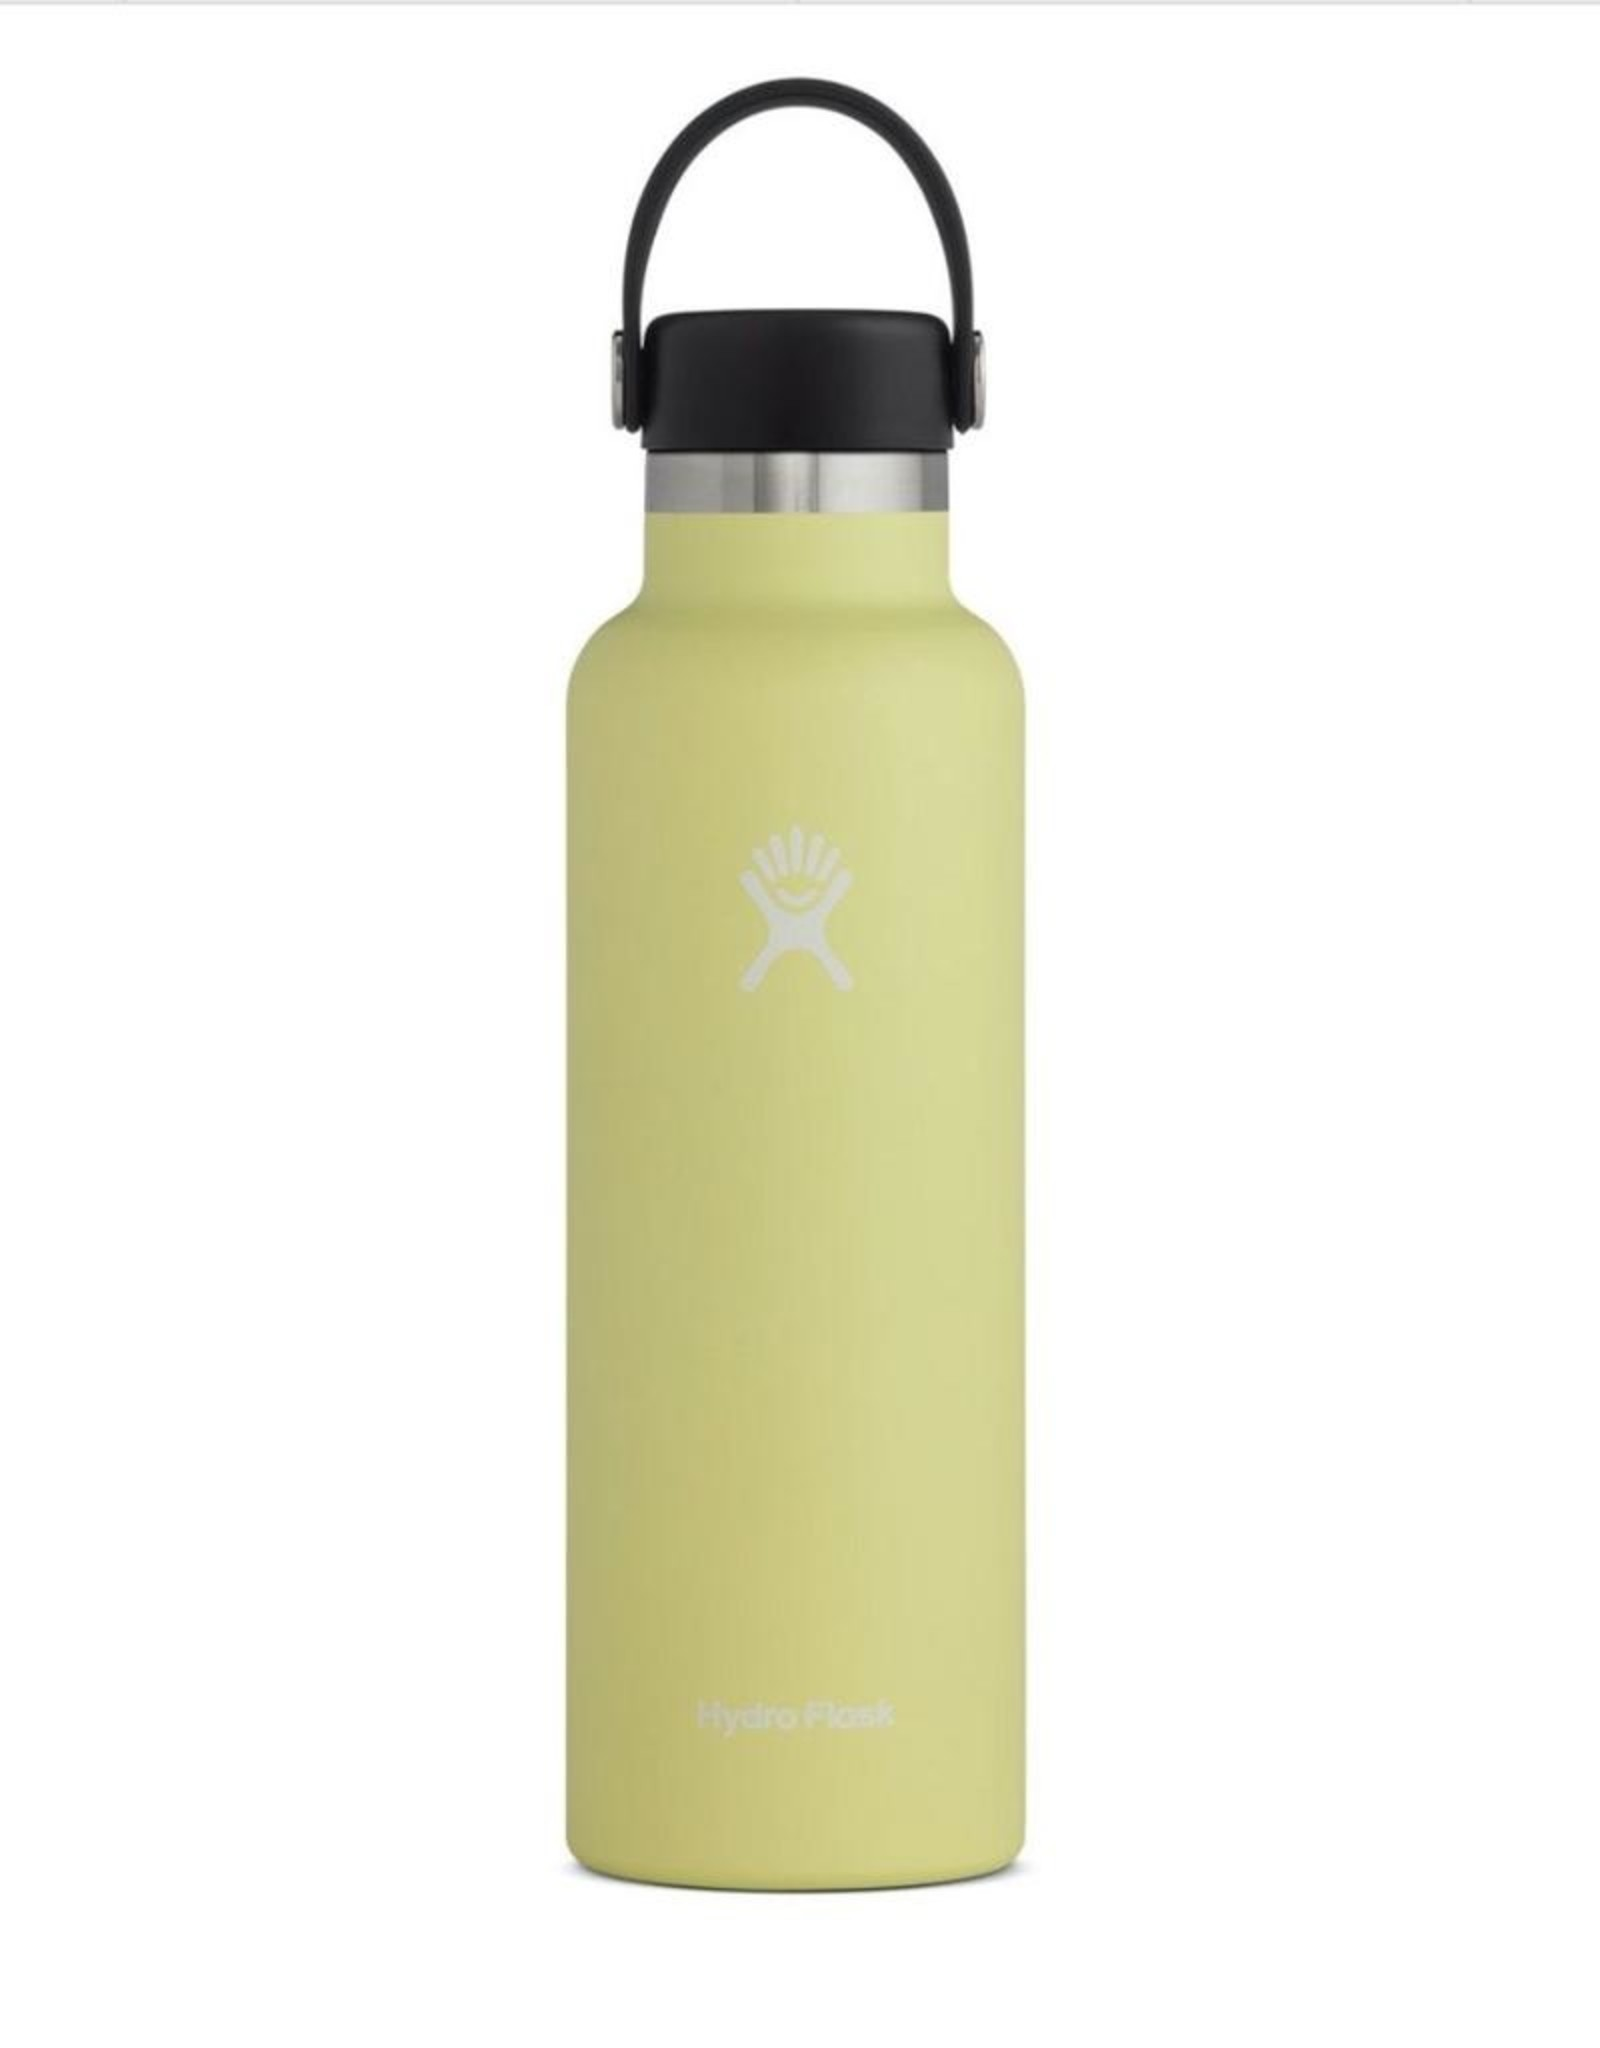 Hydro Flask 21 oz Standard Mouth in Pineapple